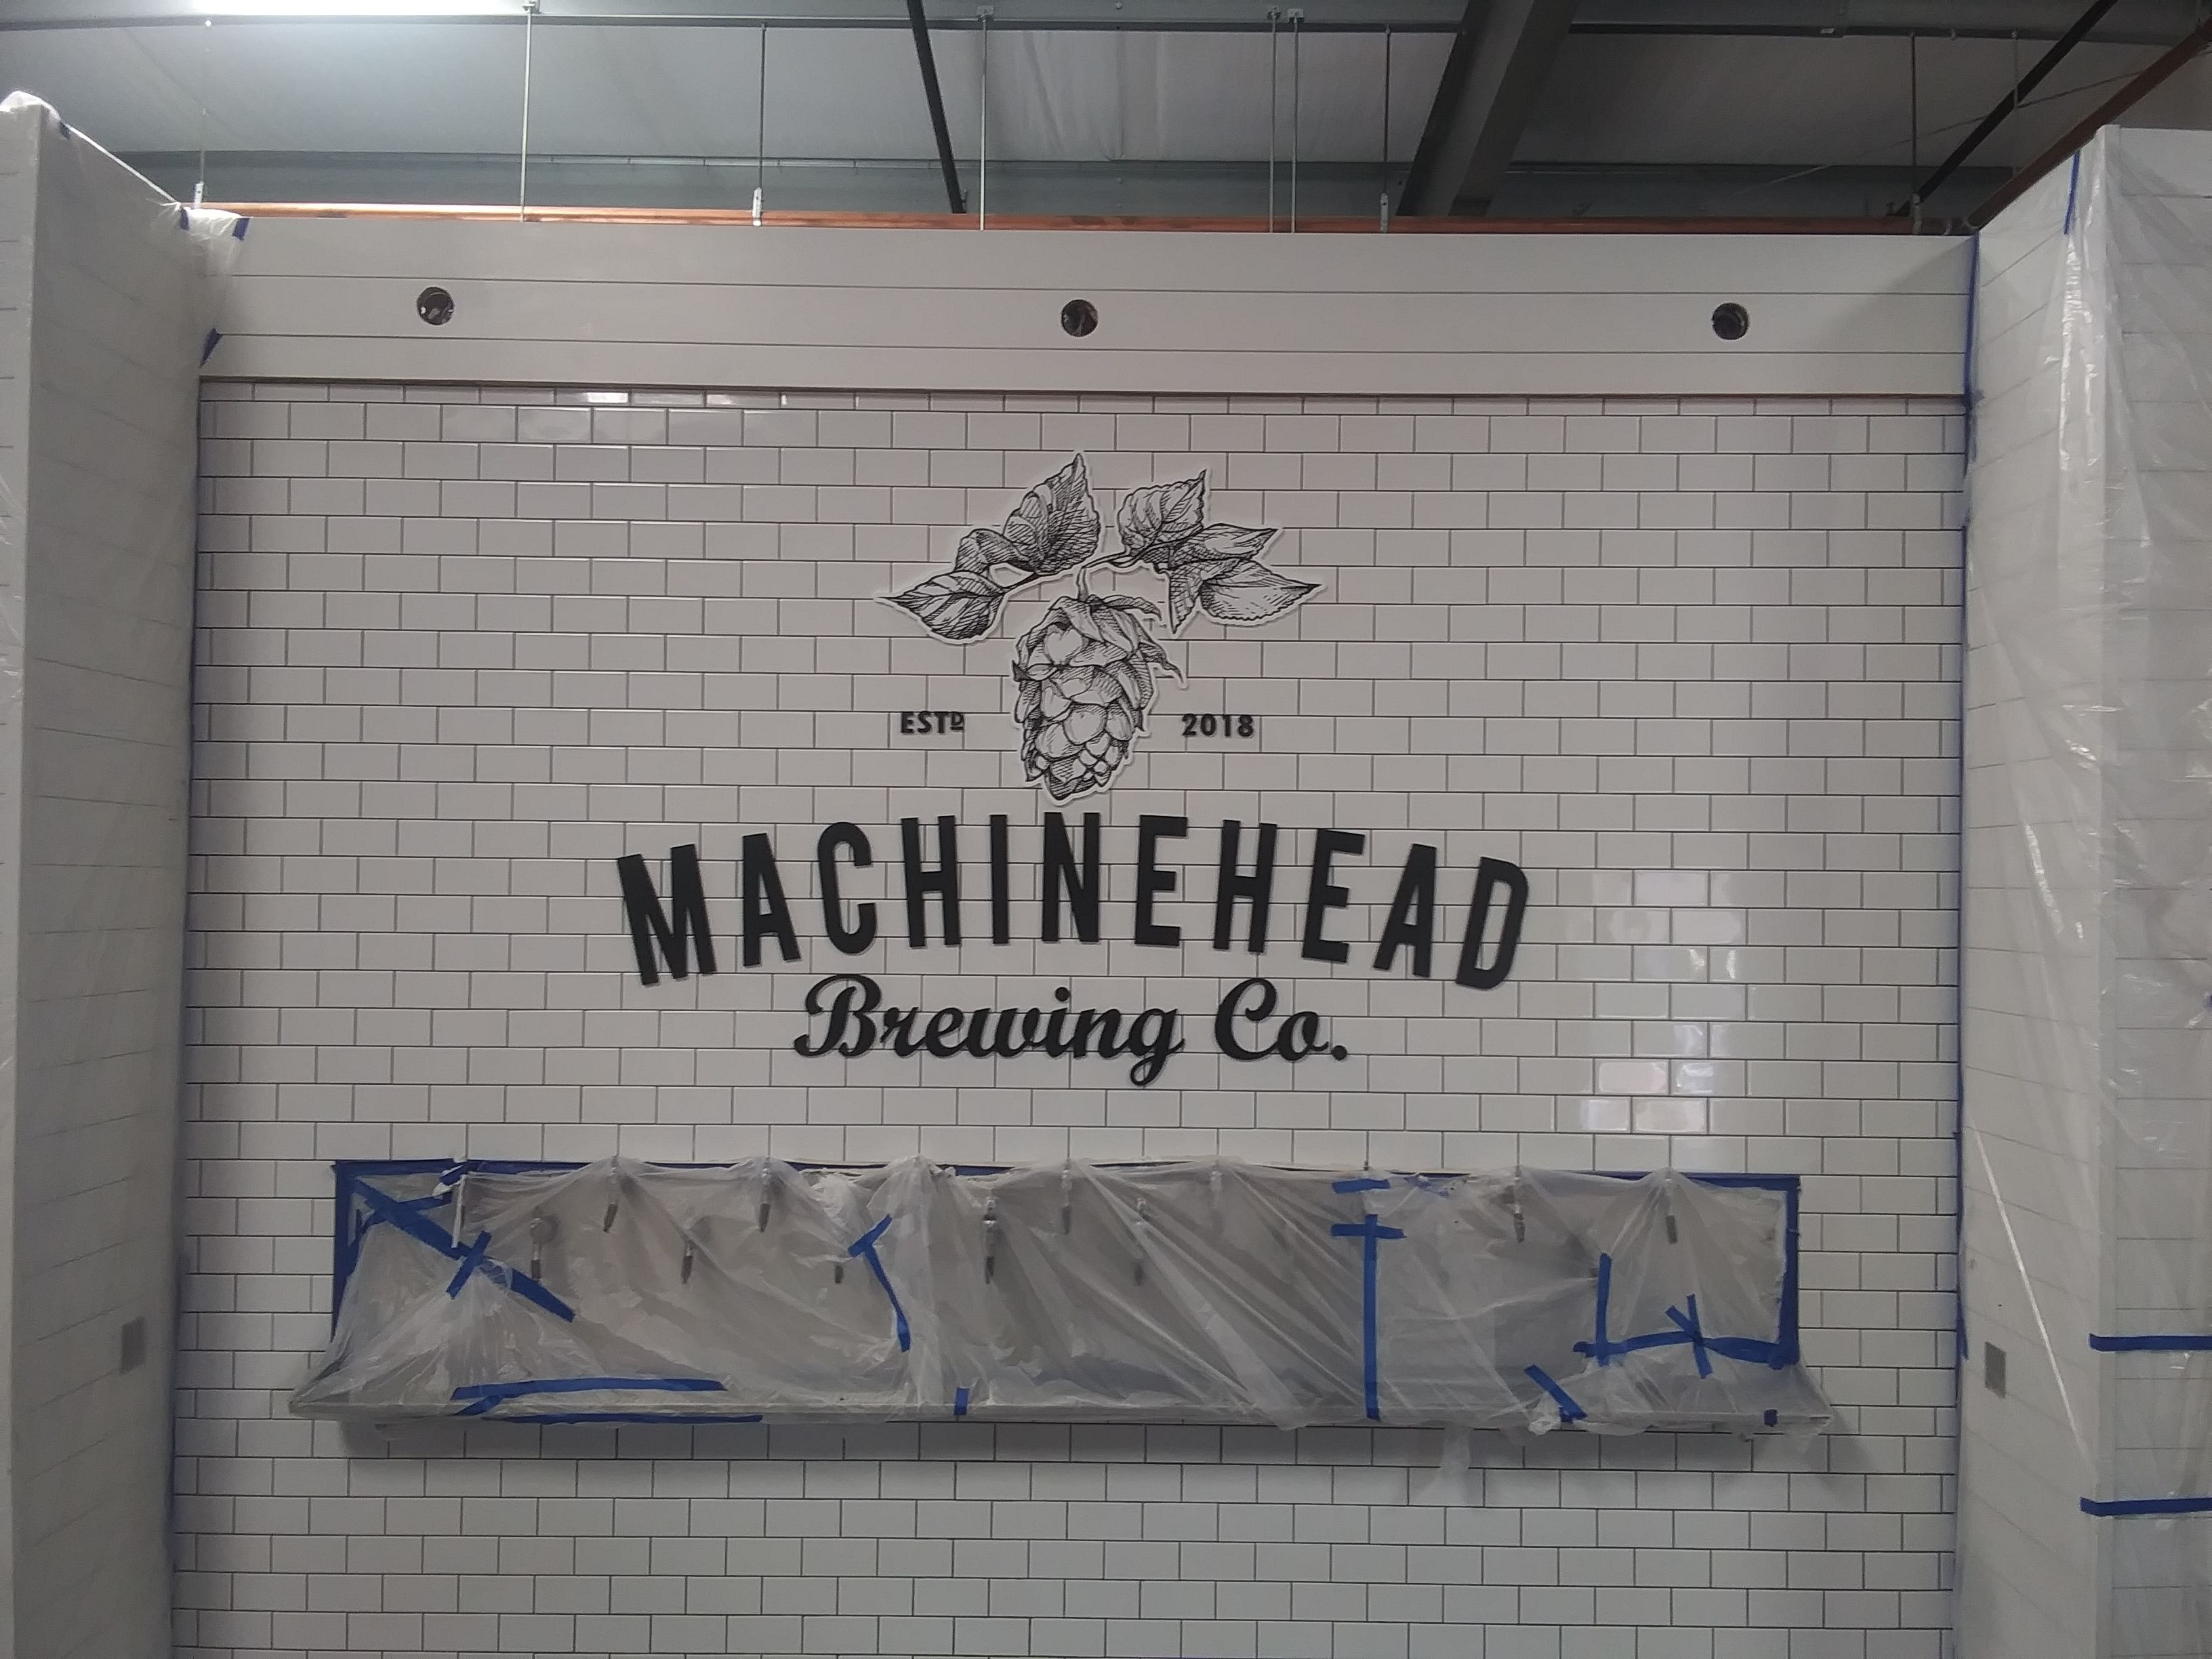 Machinehead Brewing